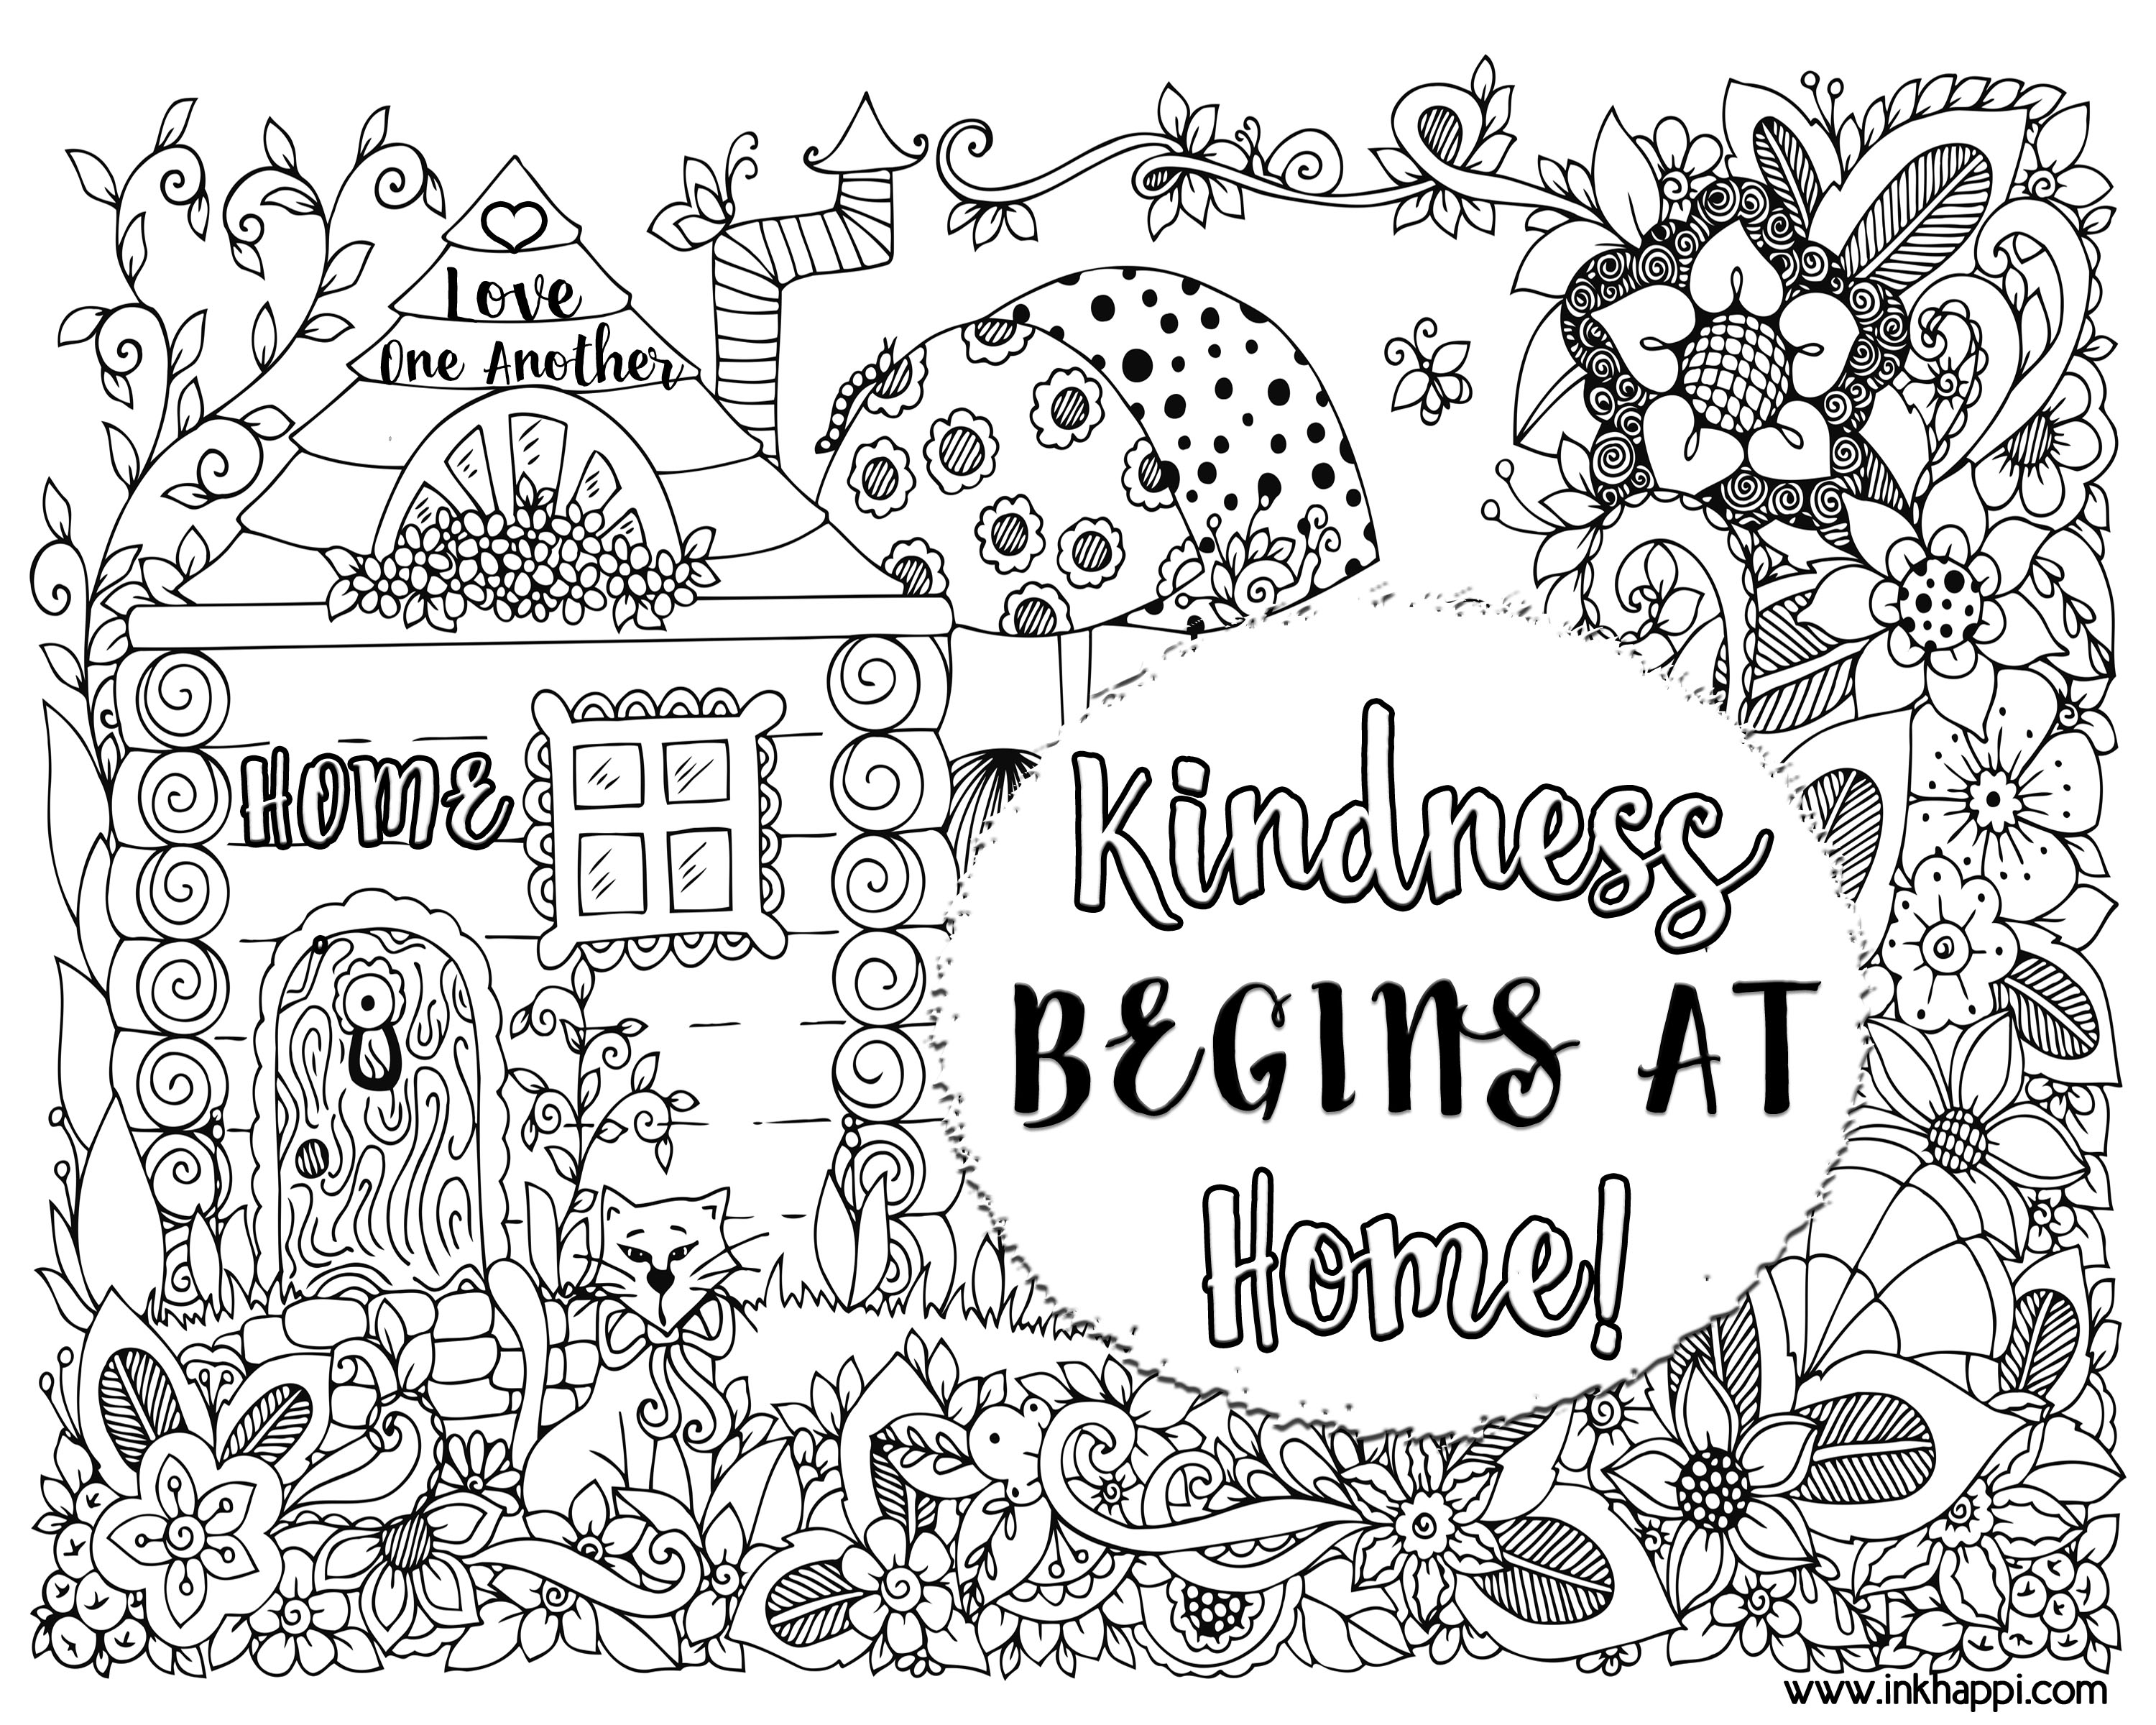 Kindness Begins at Home... A Coloring Page and a Message ...